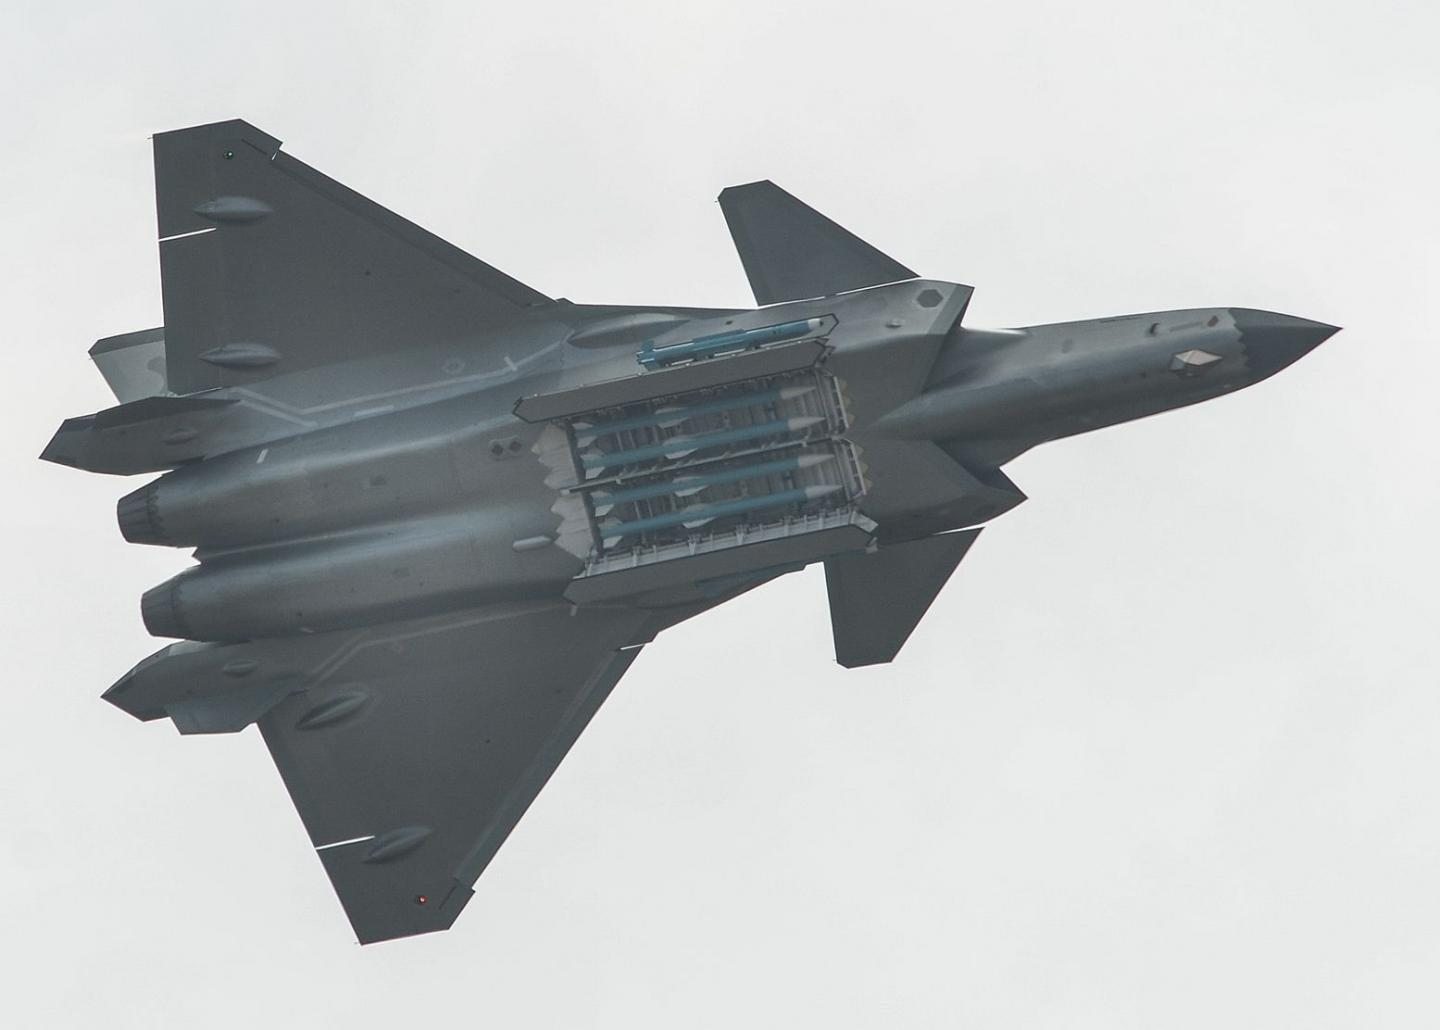 Technological Theft: Chinas J-20 Stealth Fighter Has American DNA